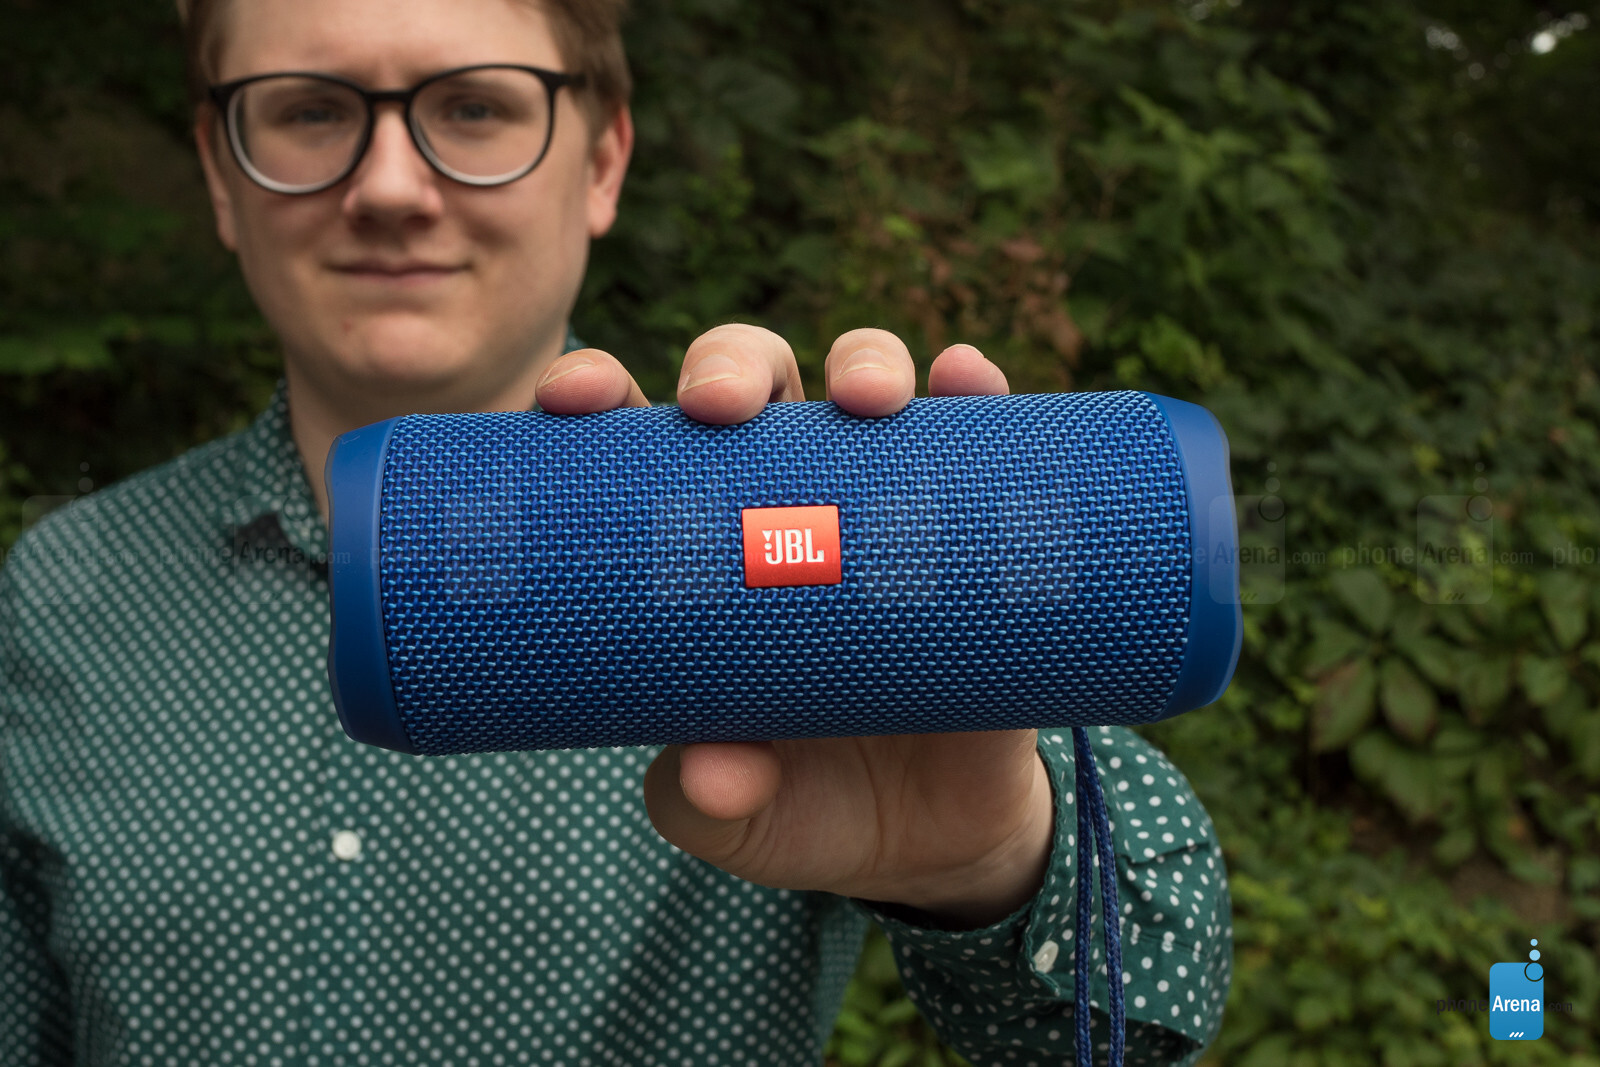 JBL Flip 4 Bluetooth speaker Review - Controls, Sound Quality